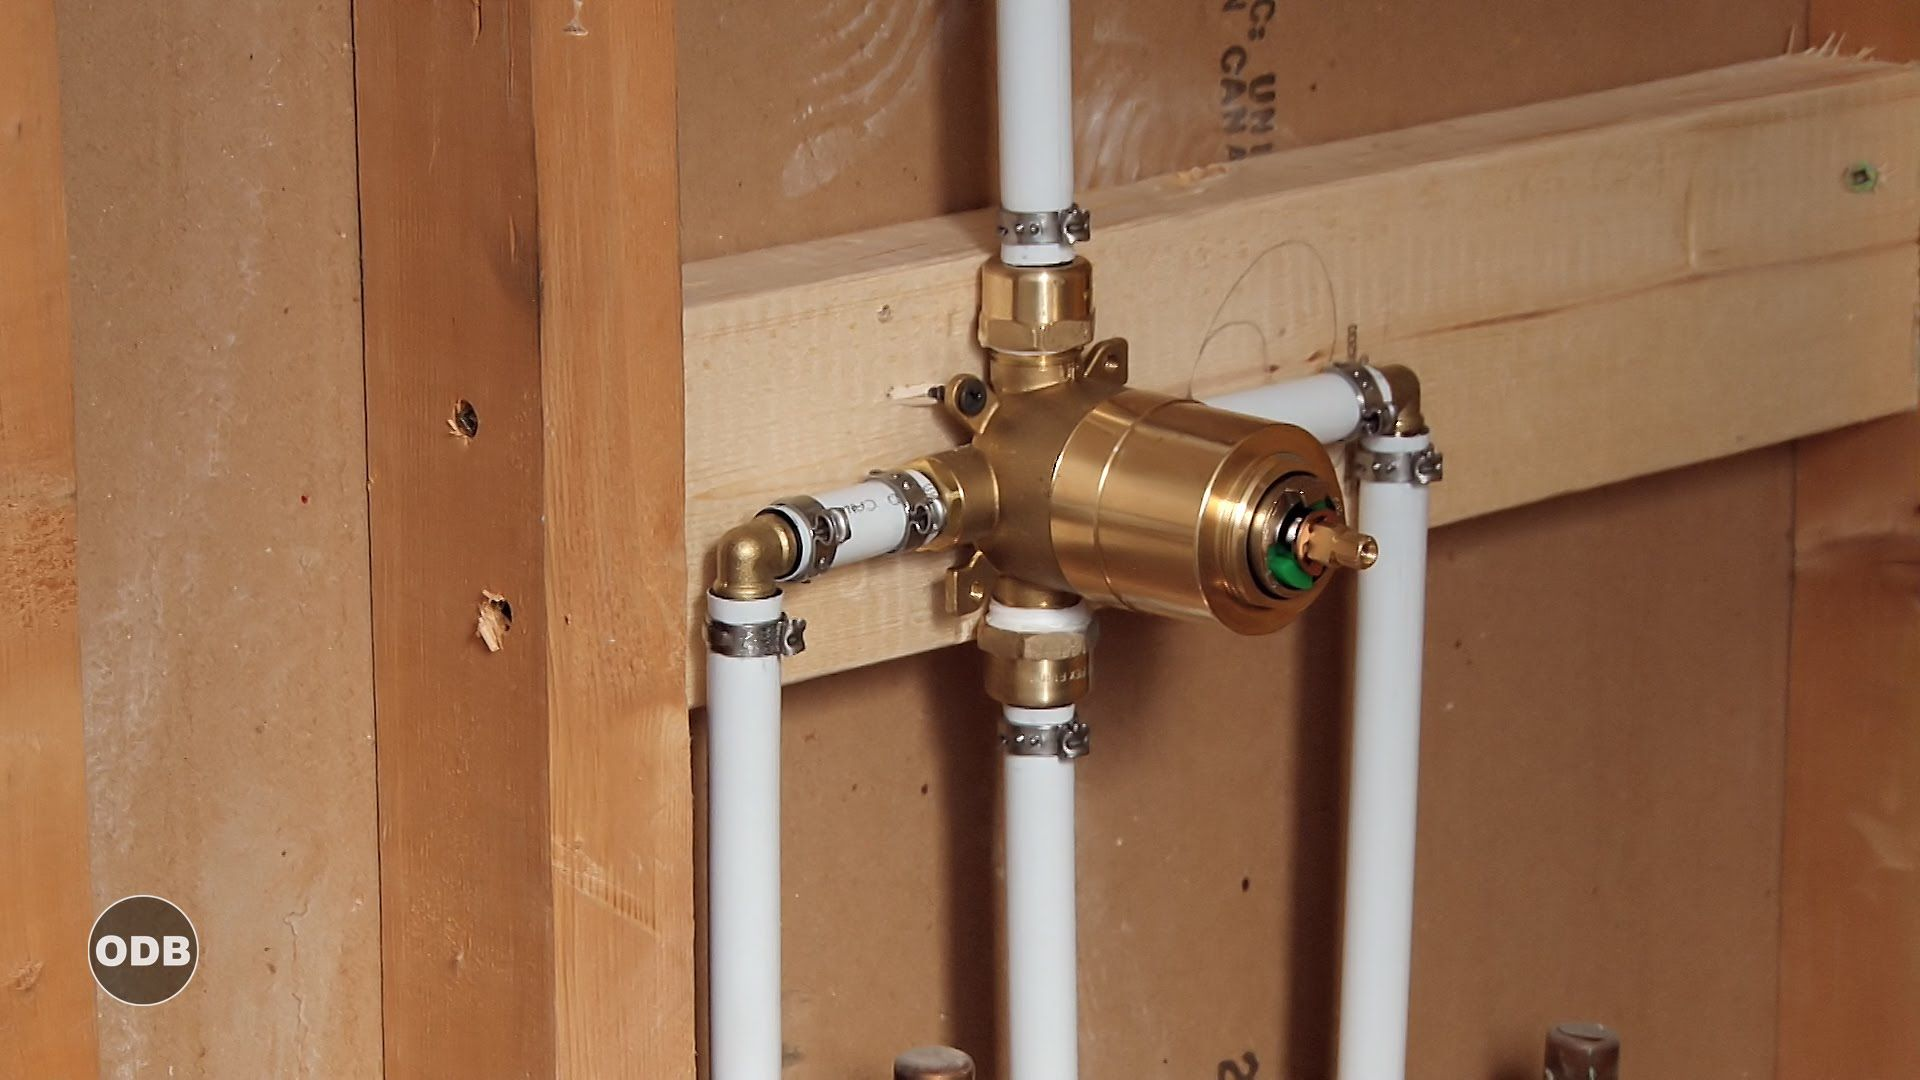 Pex Plumbing Diagram Wiring House Lighting Circuit How To Install Copper Shower And Bath